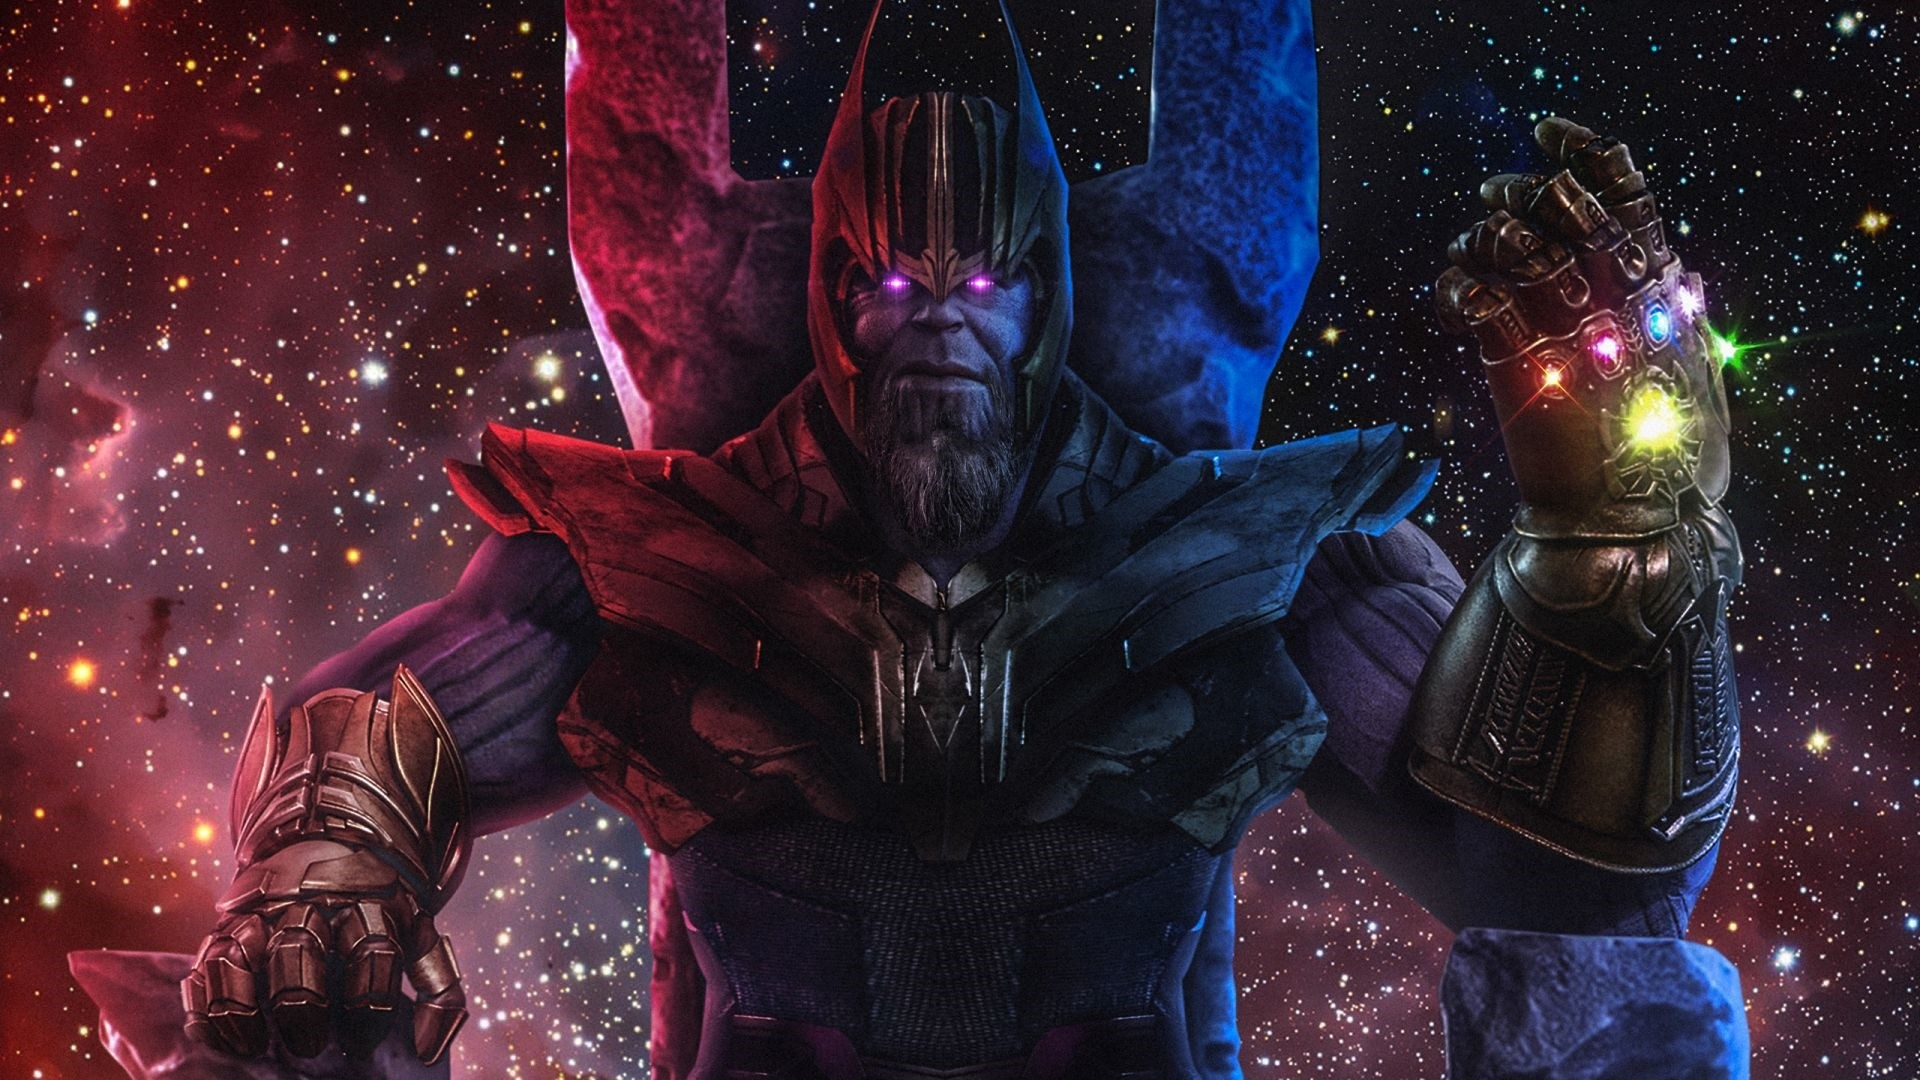 Thanos Wallpaper image hd